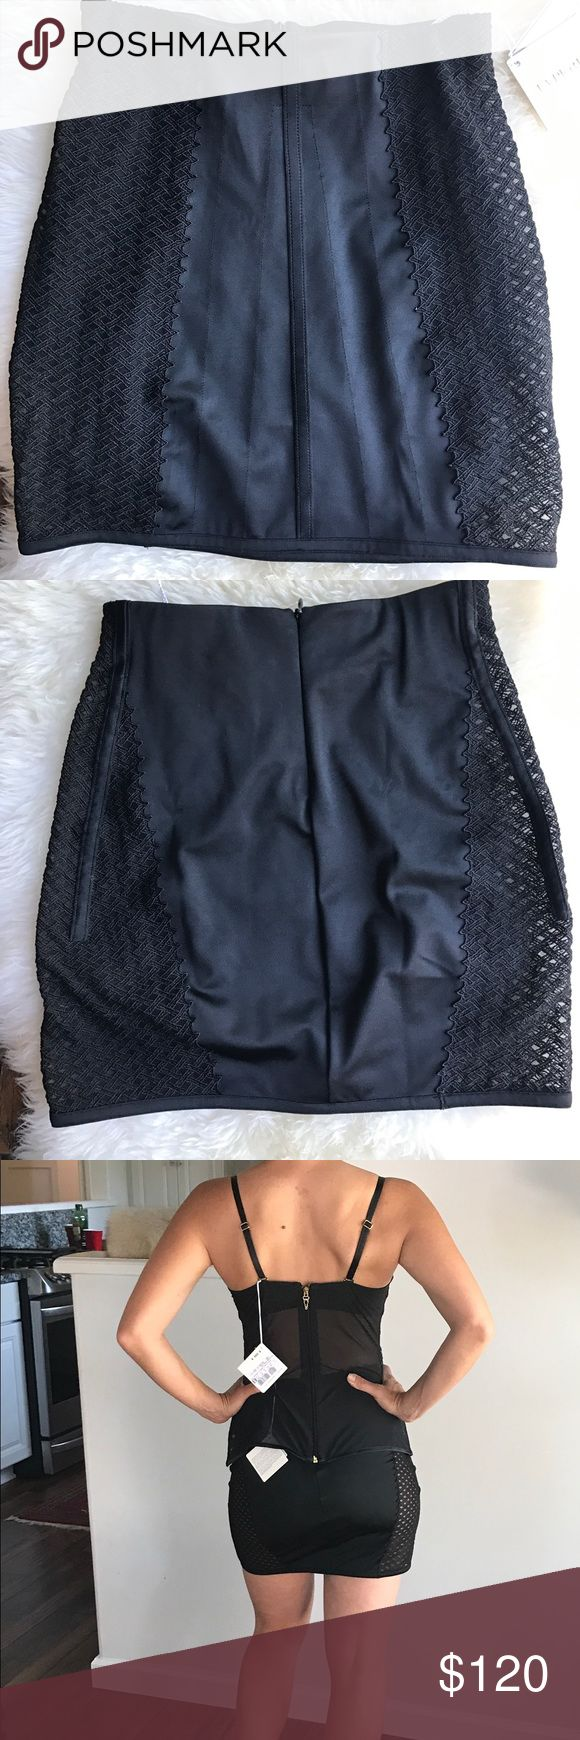 Stunning La perla mini skirt Gorgeous La Perla mini skirt. Can be worn out or as lingerie.  Lycra body contouring fit with sheer lace side panels.  Invisible zipper closure. 15 inches in length. La Perla Intimates & Sleepwear